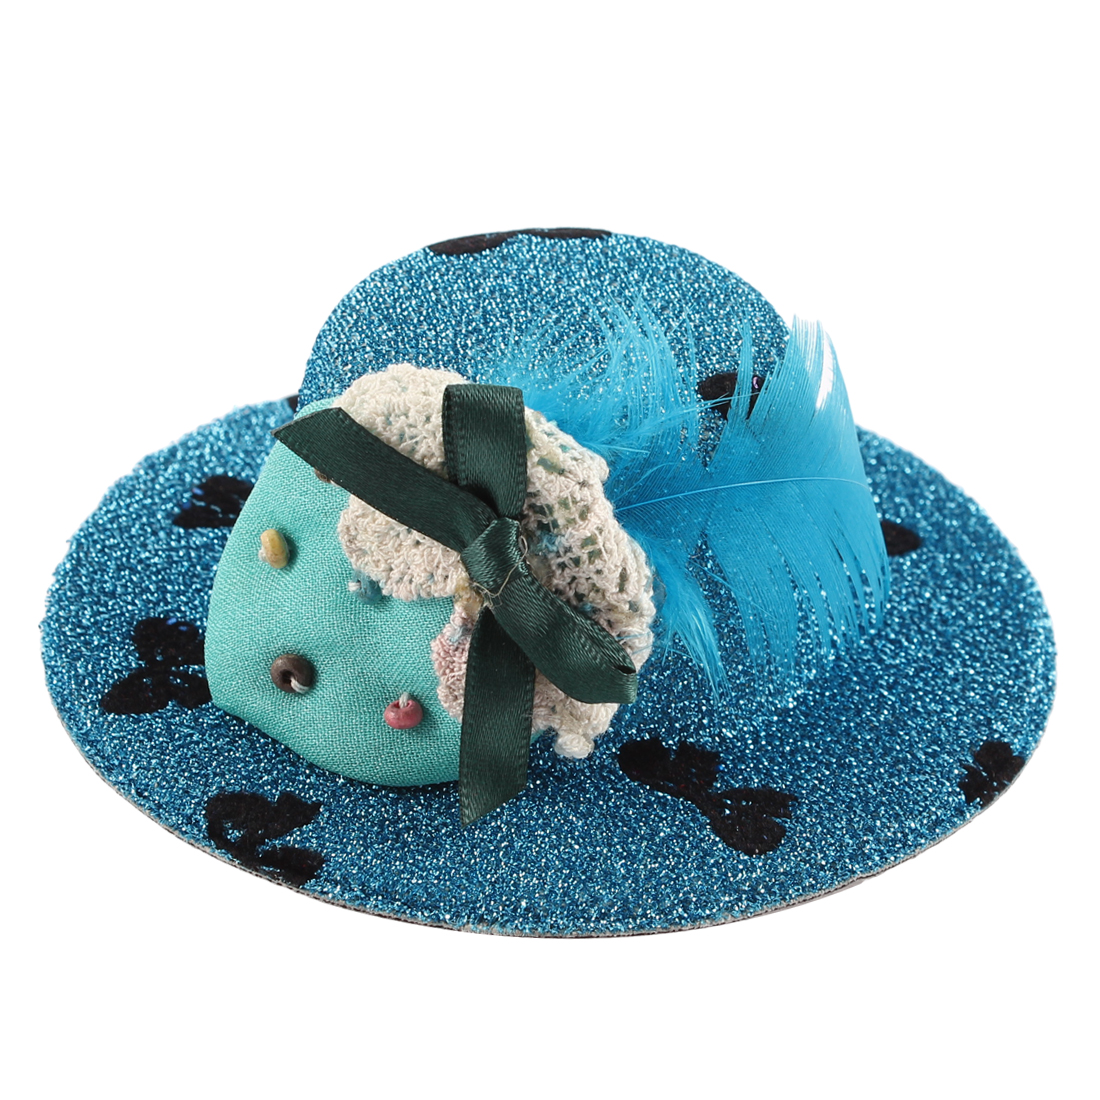 Lady Bowknot Print Cyan Strawberry Detail Glittery Tinsel Coated Top Hat Hairclip Blue